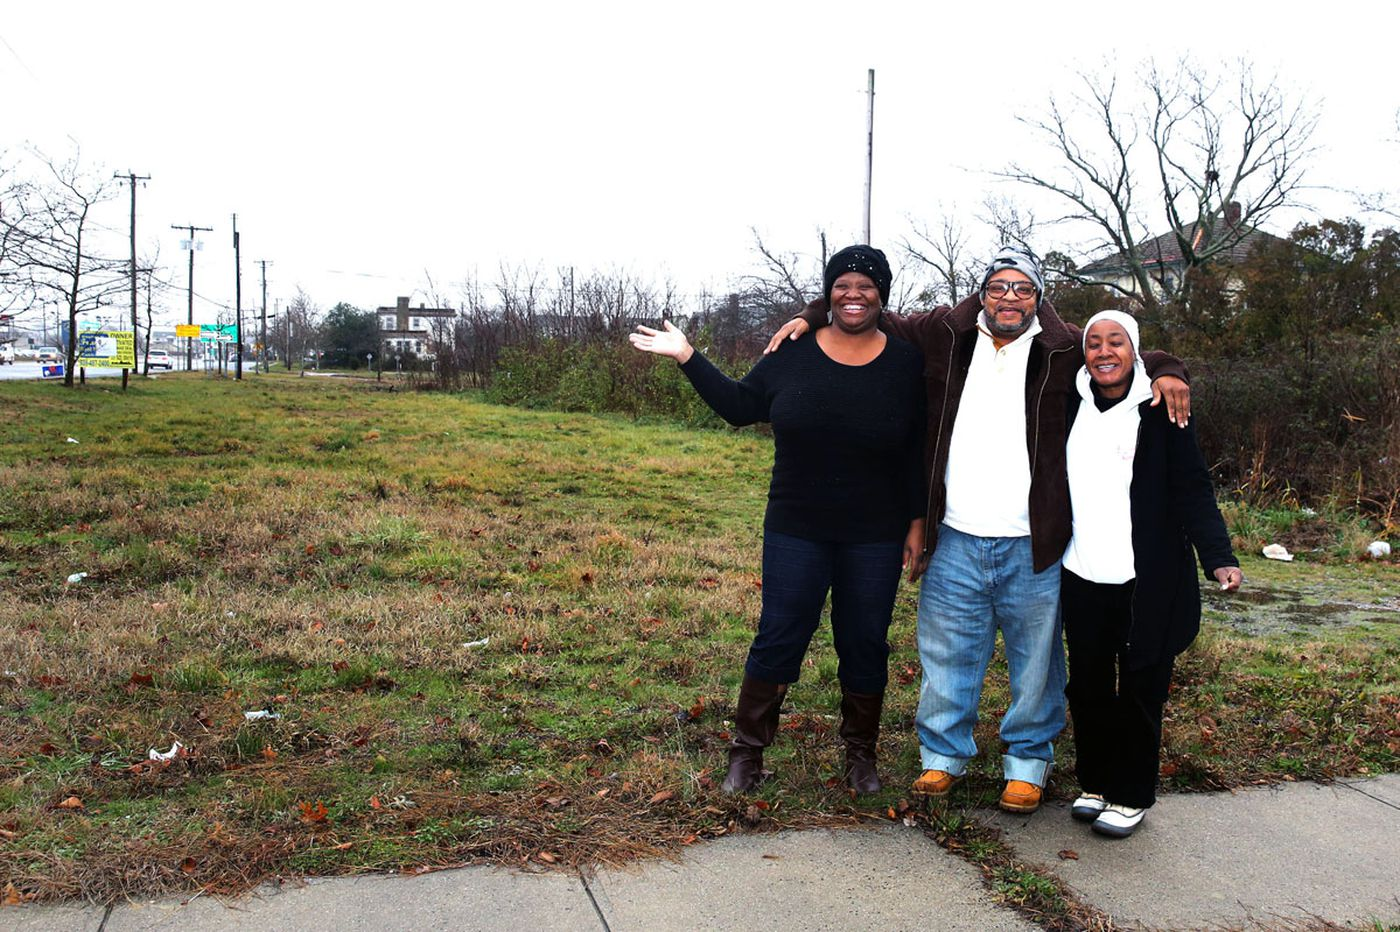 A.C. church gets land for new location free